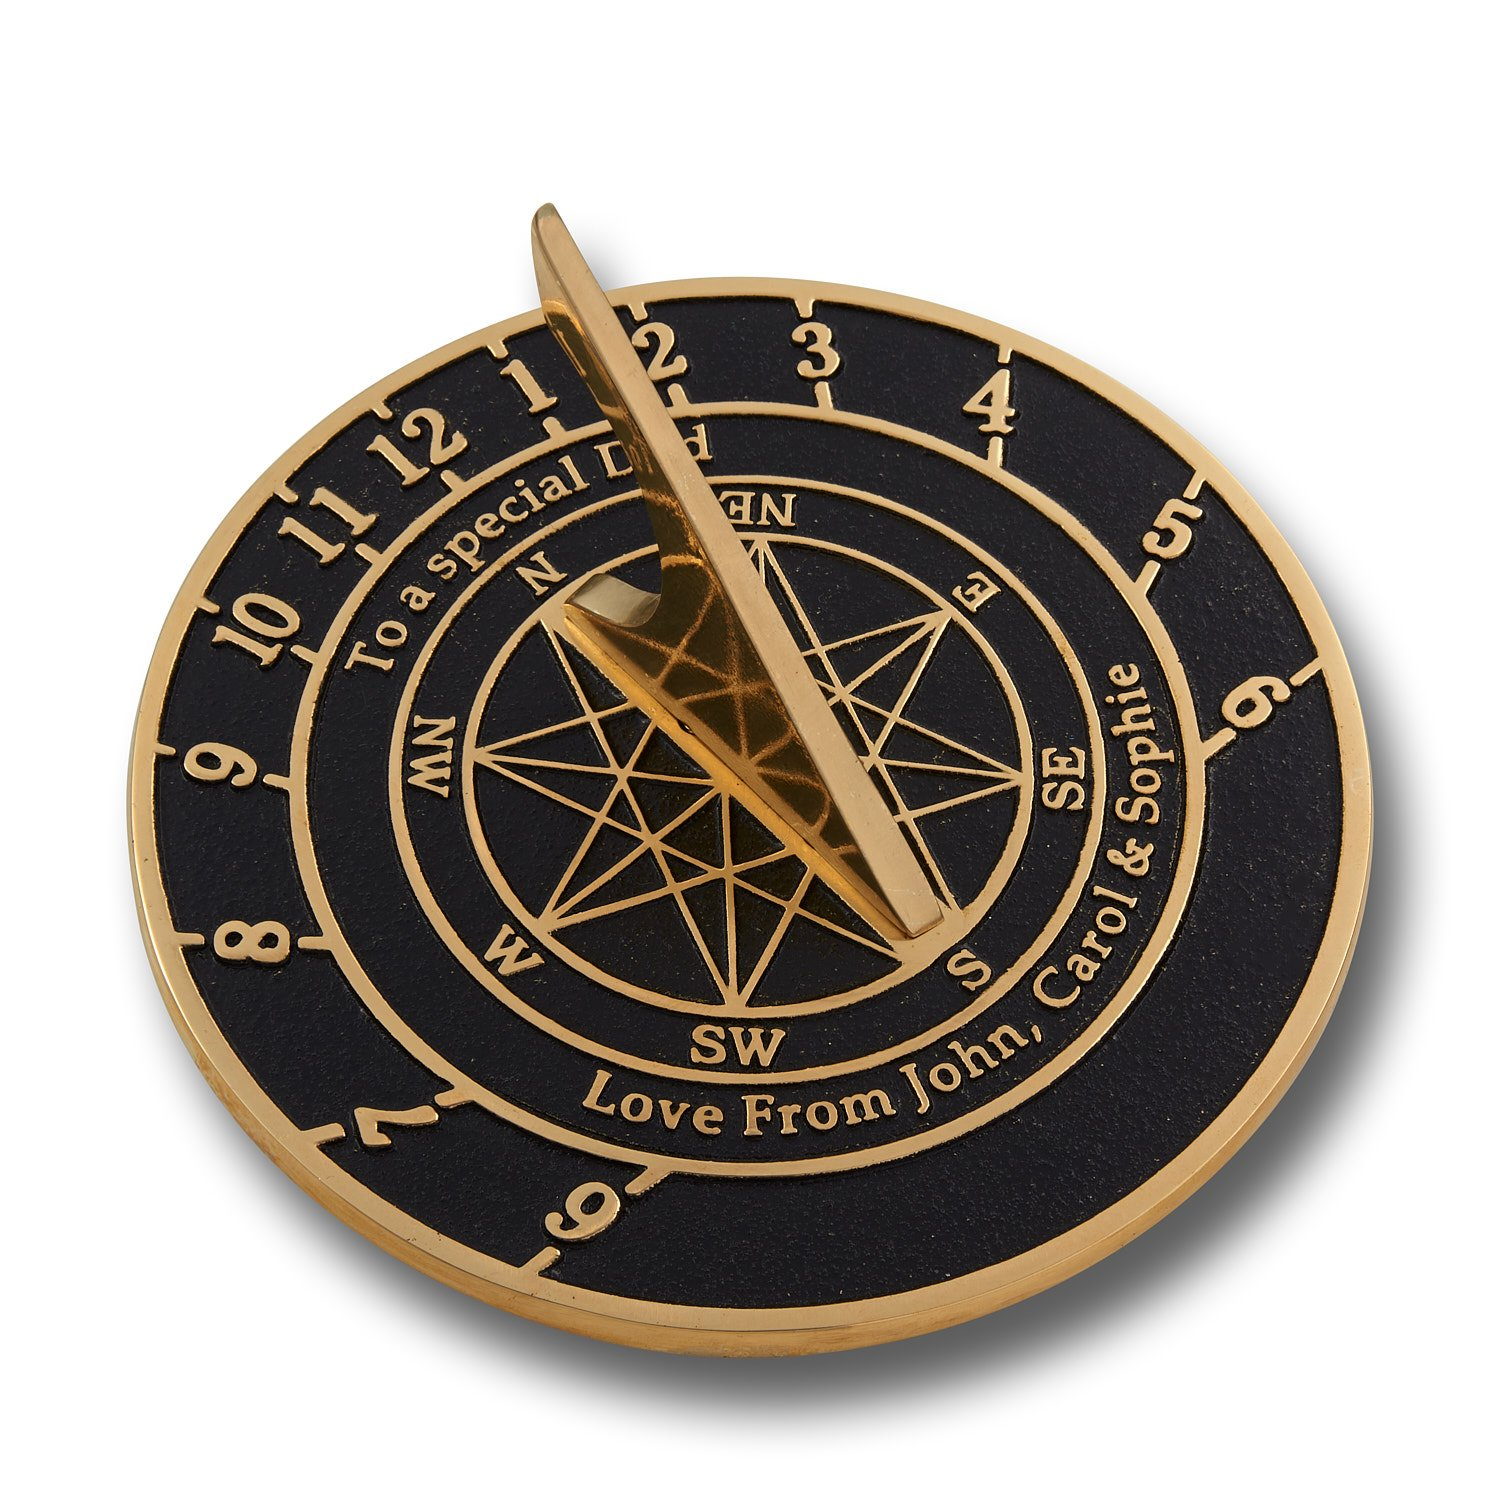 The Metal Foundry Personalized Large Brass Sundial with Pedestal Gift. This Unique Gift Idea for Him Or Her is Cast with Your Message and Will Make The Perfect Present for Birthday Or Christmas by The Metal Foundry Ltd